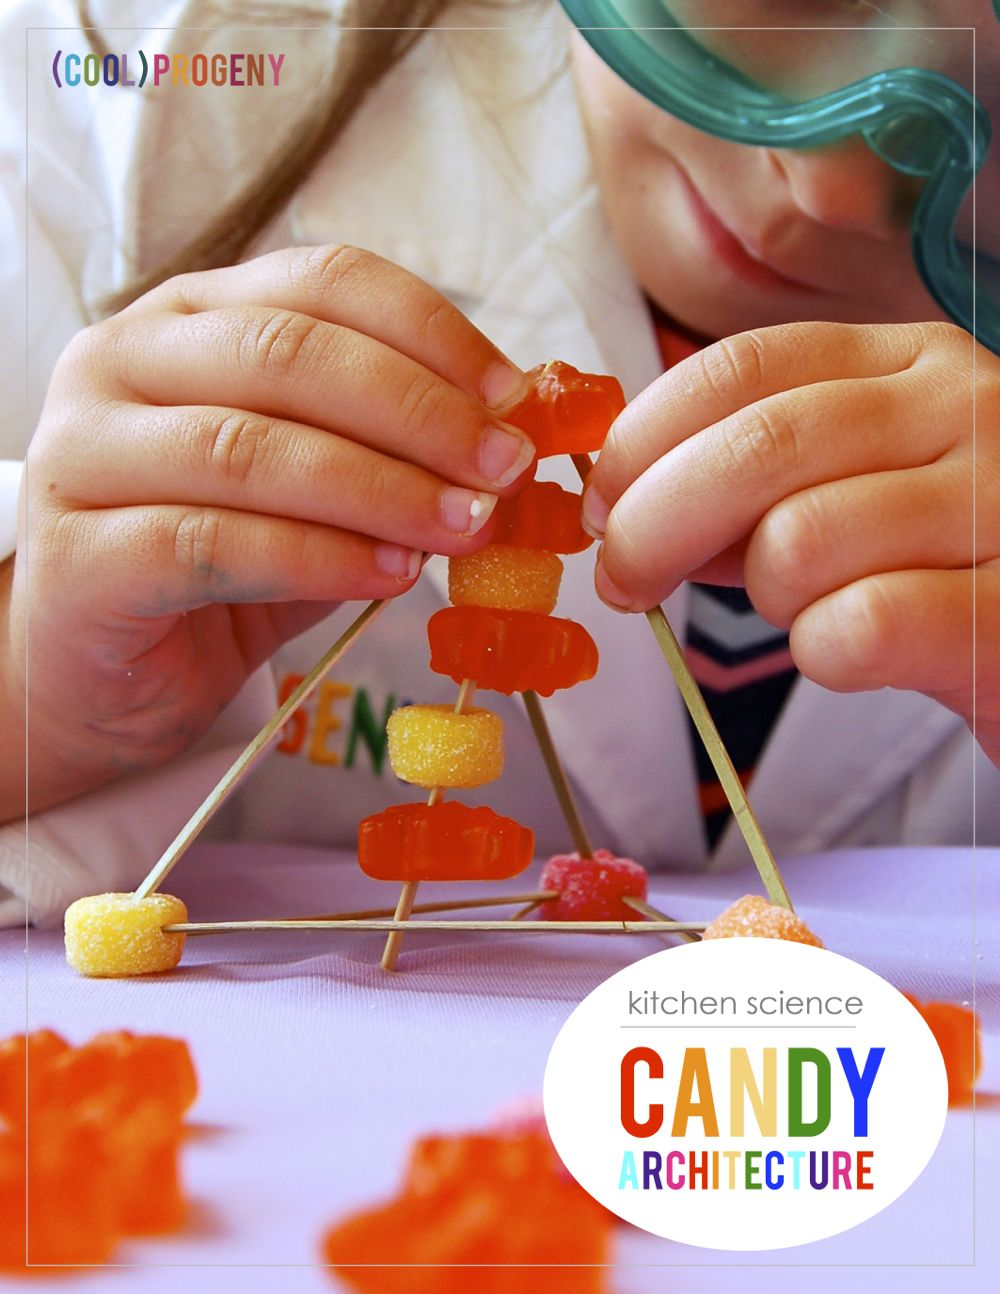 Candy Architecture - (cool) progeny